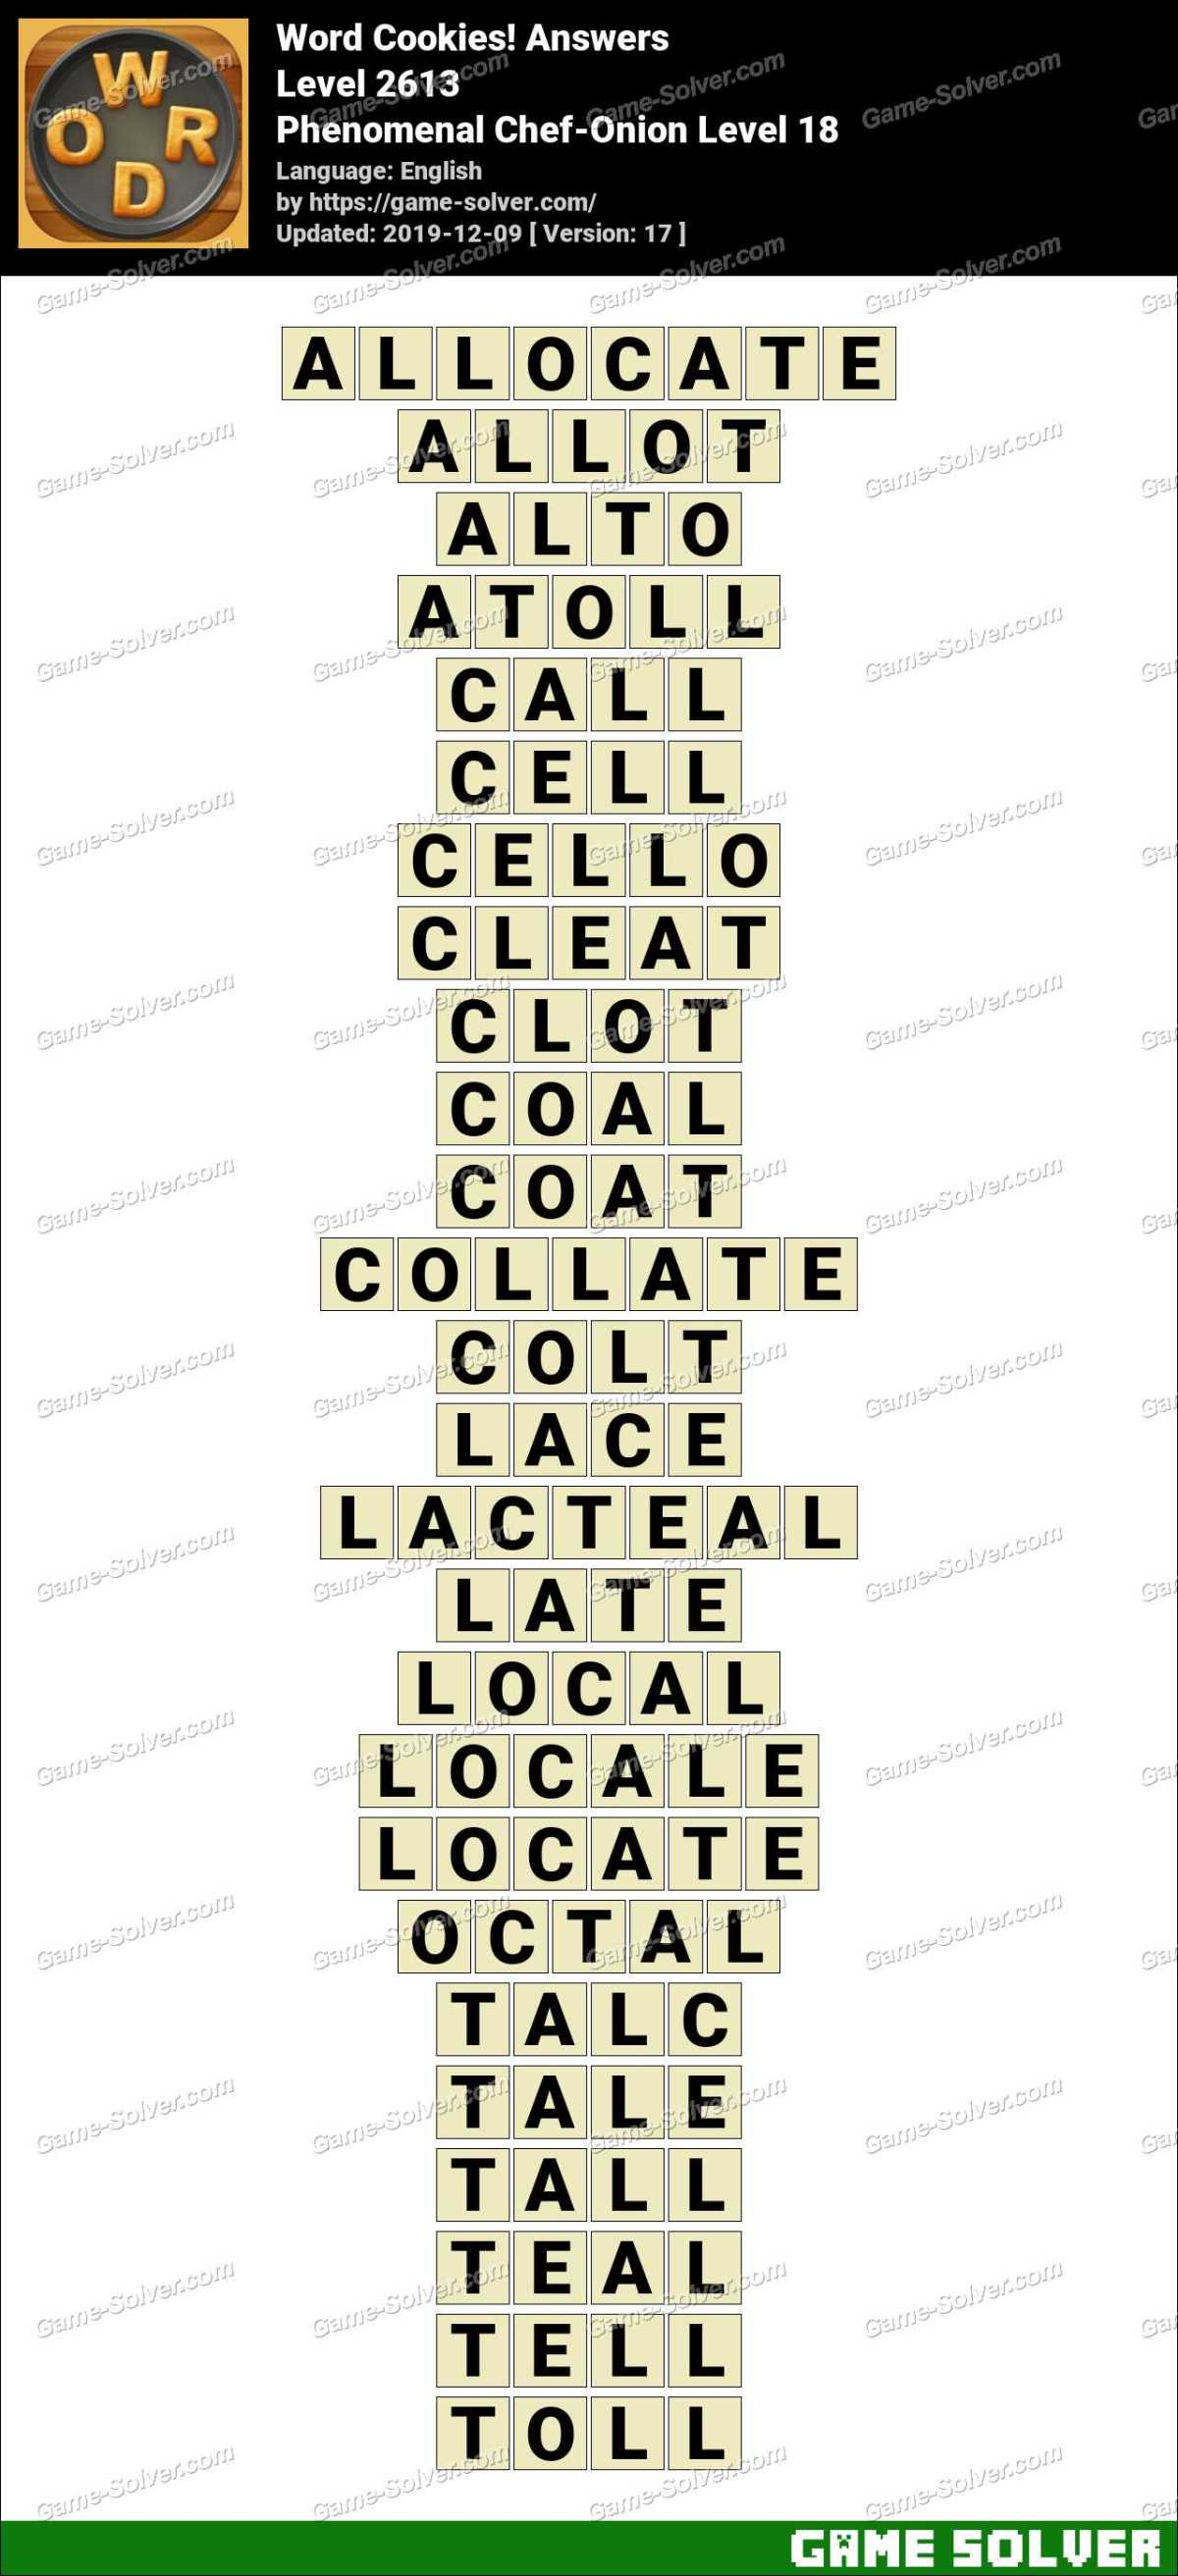 Word Cookies Phenomenal Chef-Onion Level 18 Answers